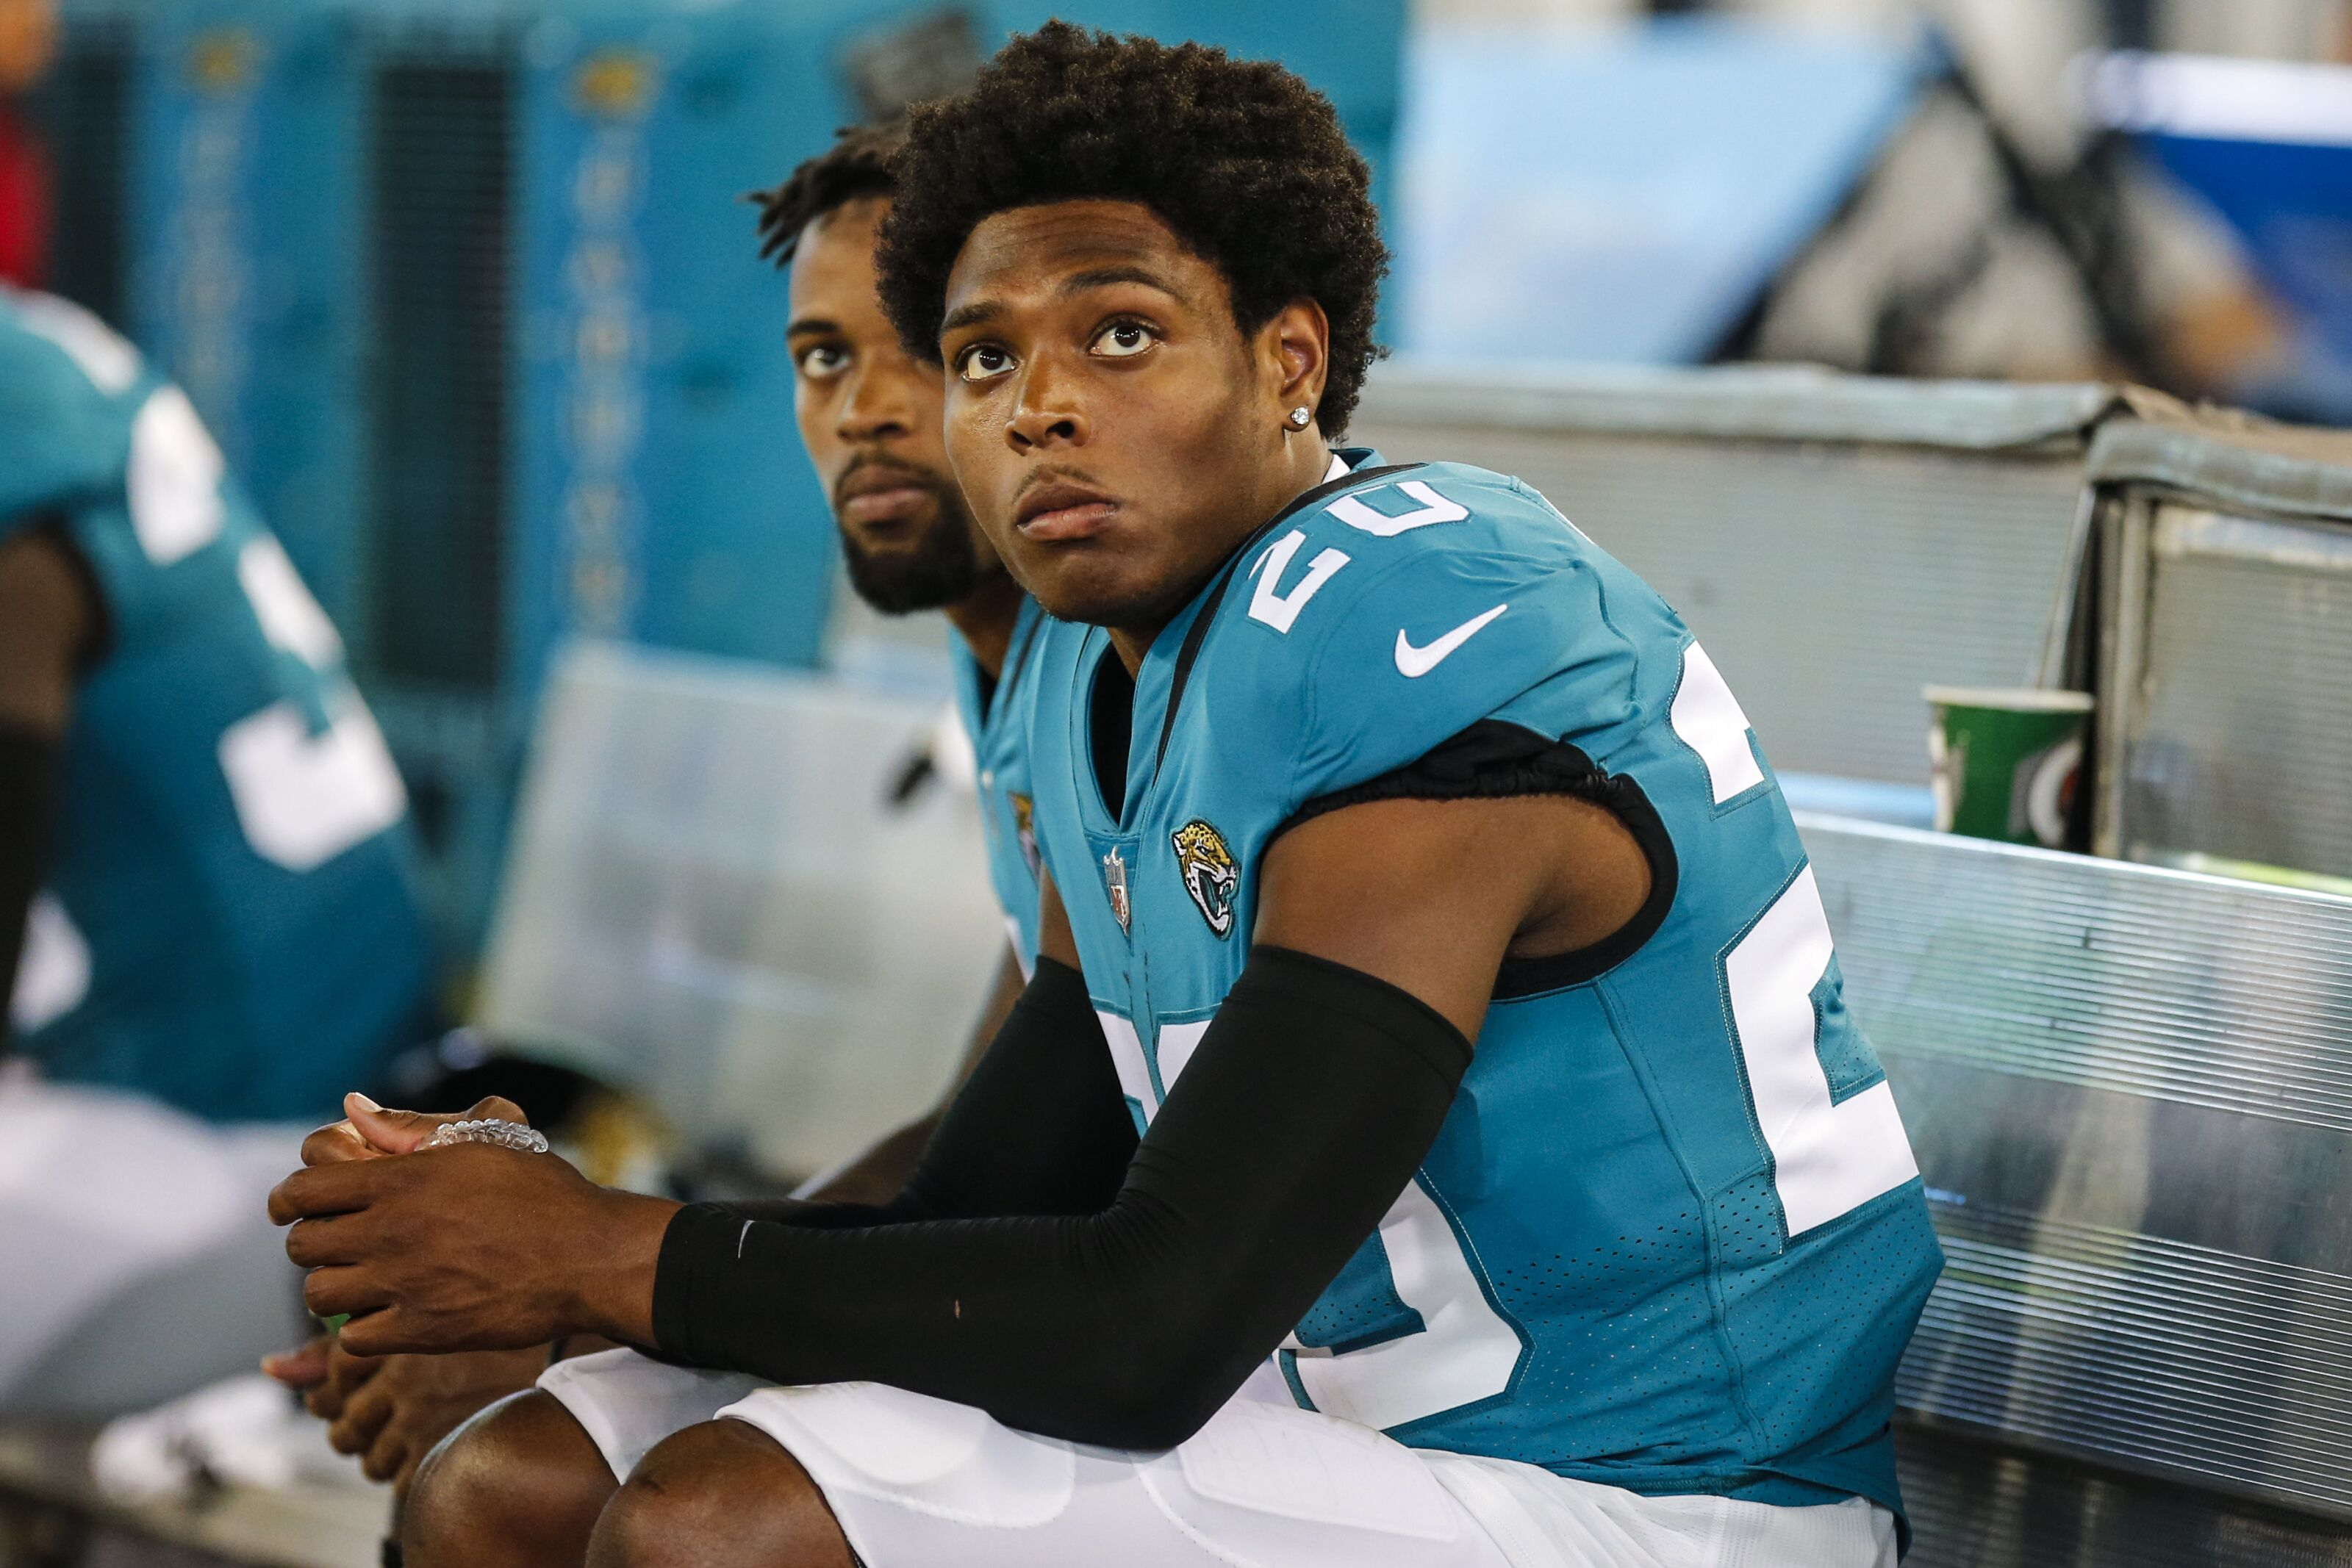 JACKSONVILLE, FL - AUGUST 09: Jacksonville Jaguars cornerback Jalen Ramsey (20) on the bench during the game between the New Orleans Saints and the Jacksonville Jaguars on August 9, 2018 at TIAA Bank Field in Jacksonville, Fl. (Photo by David Rosenblum/Icon Sportswire via Getty Images)